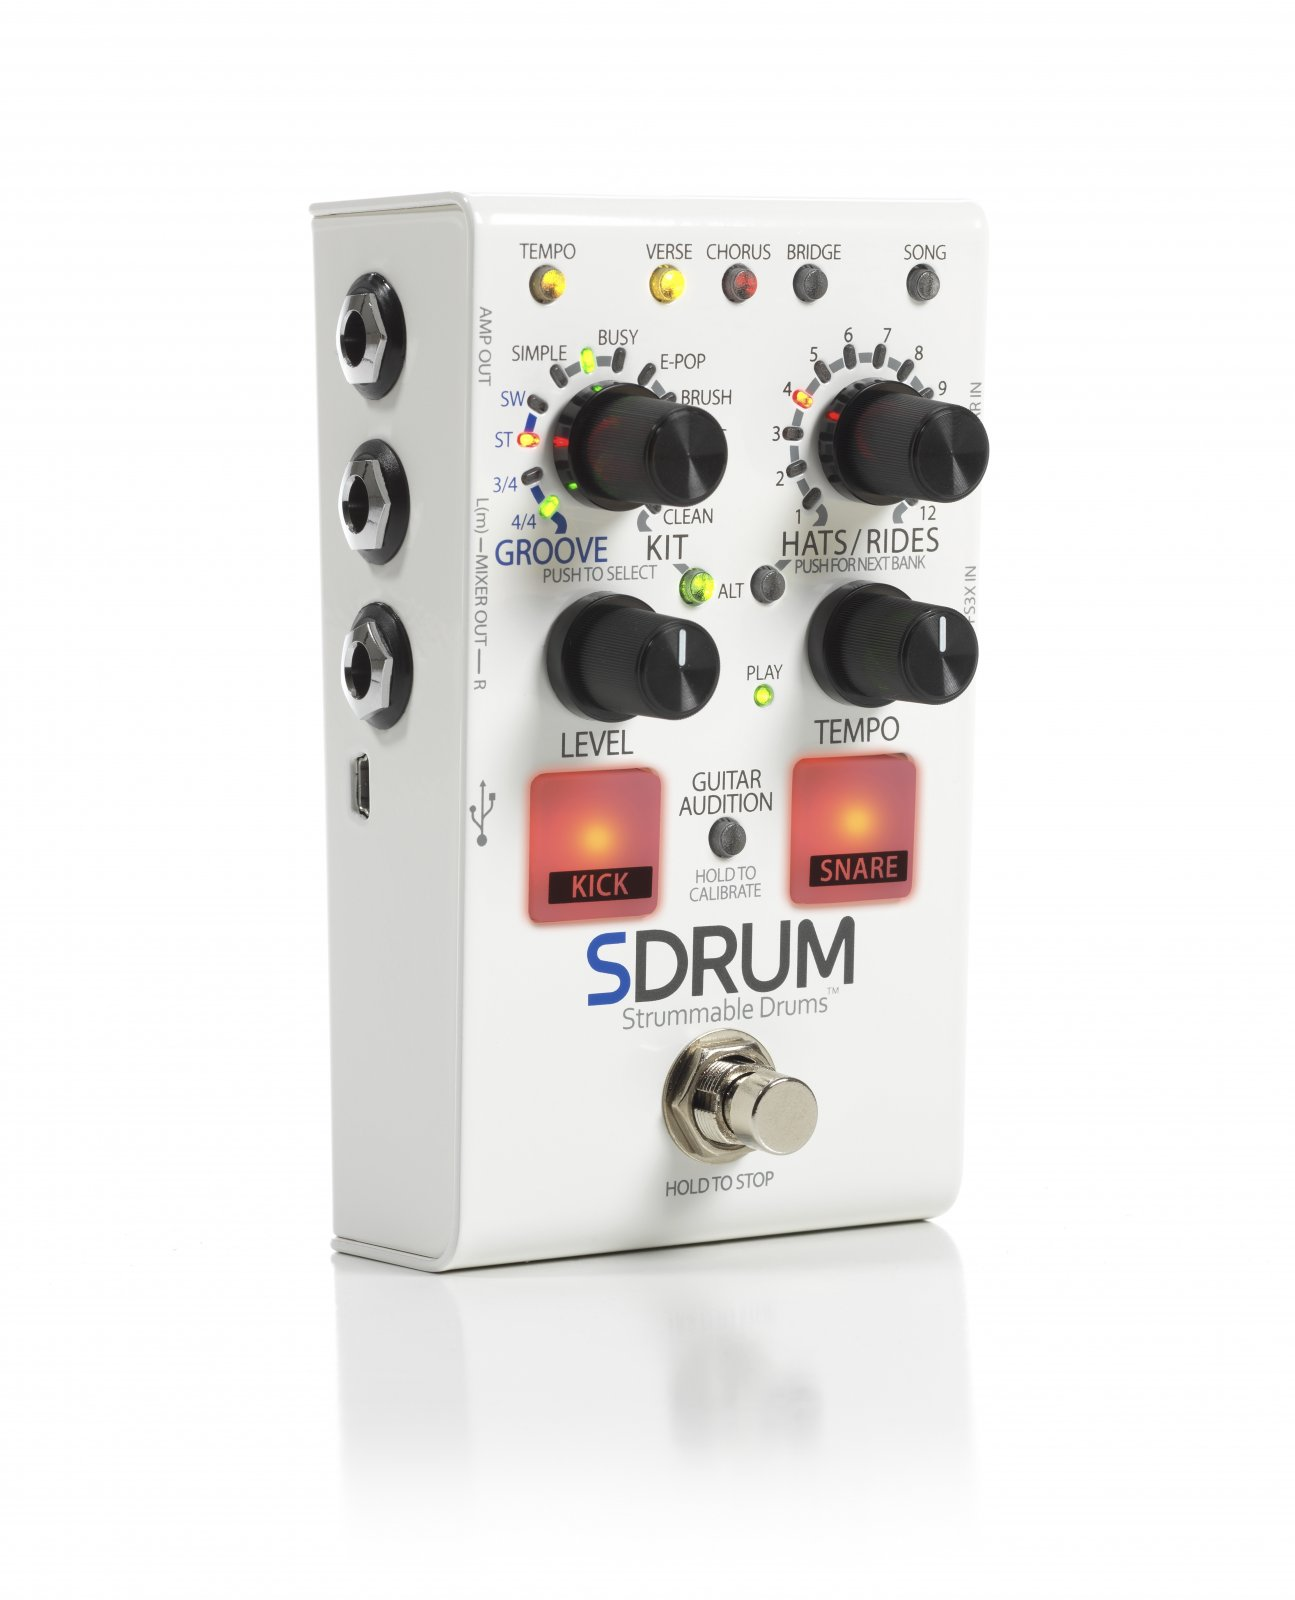 OPEN BOX Digitech SDRUM Strummable Drums